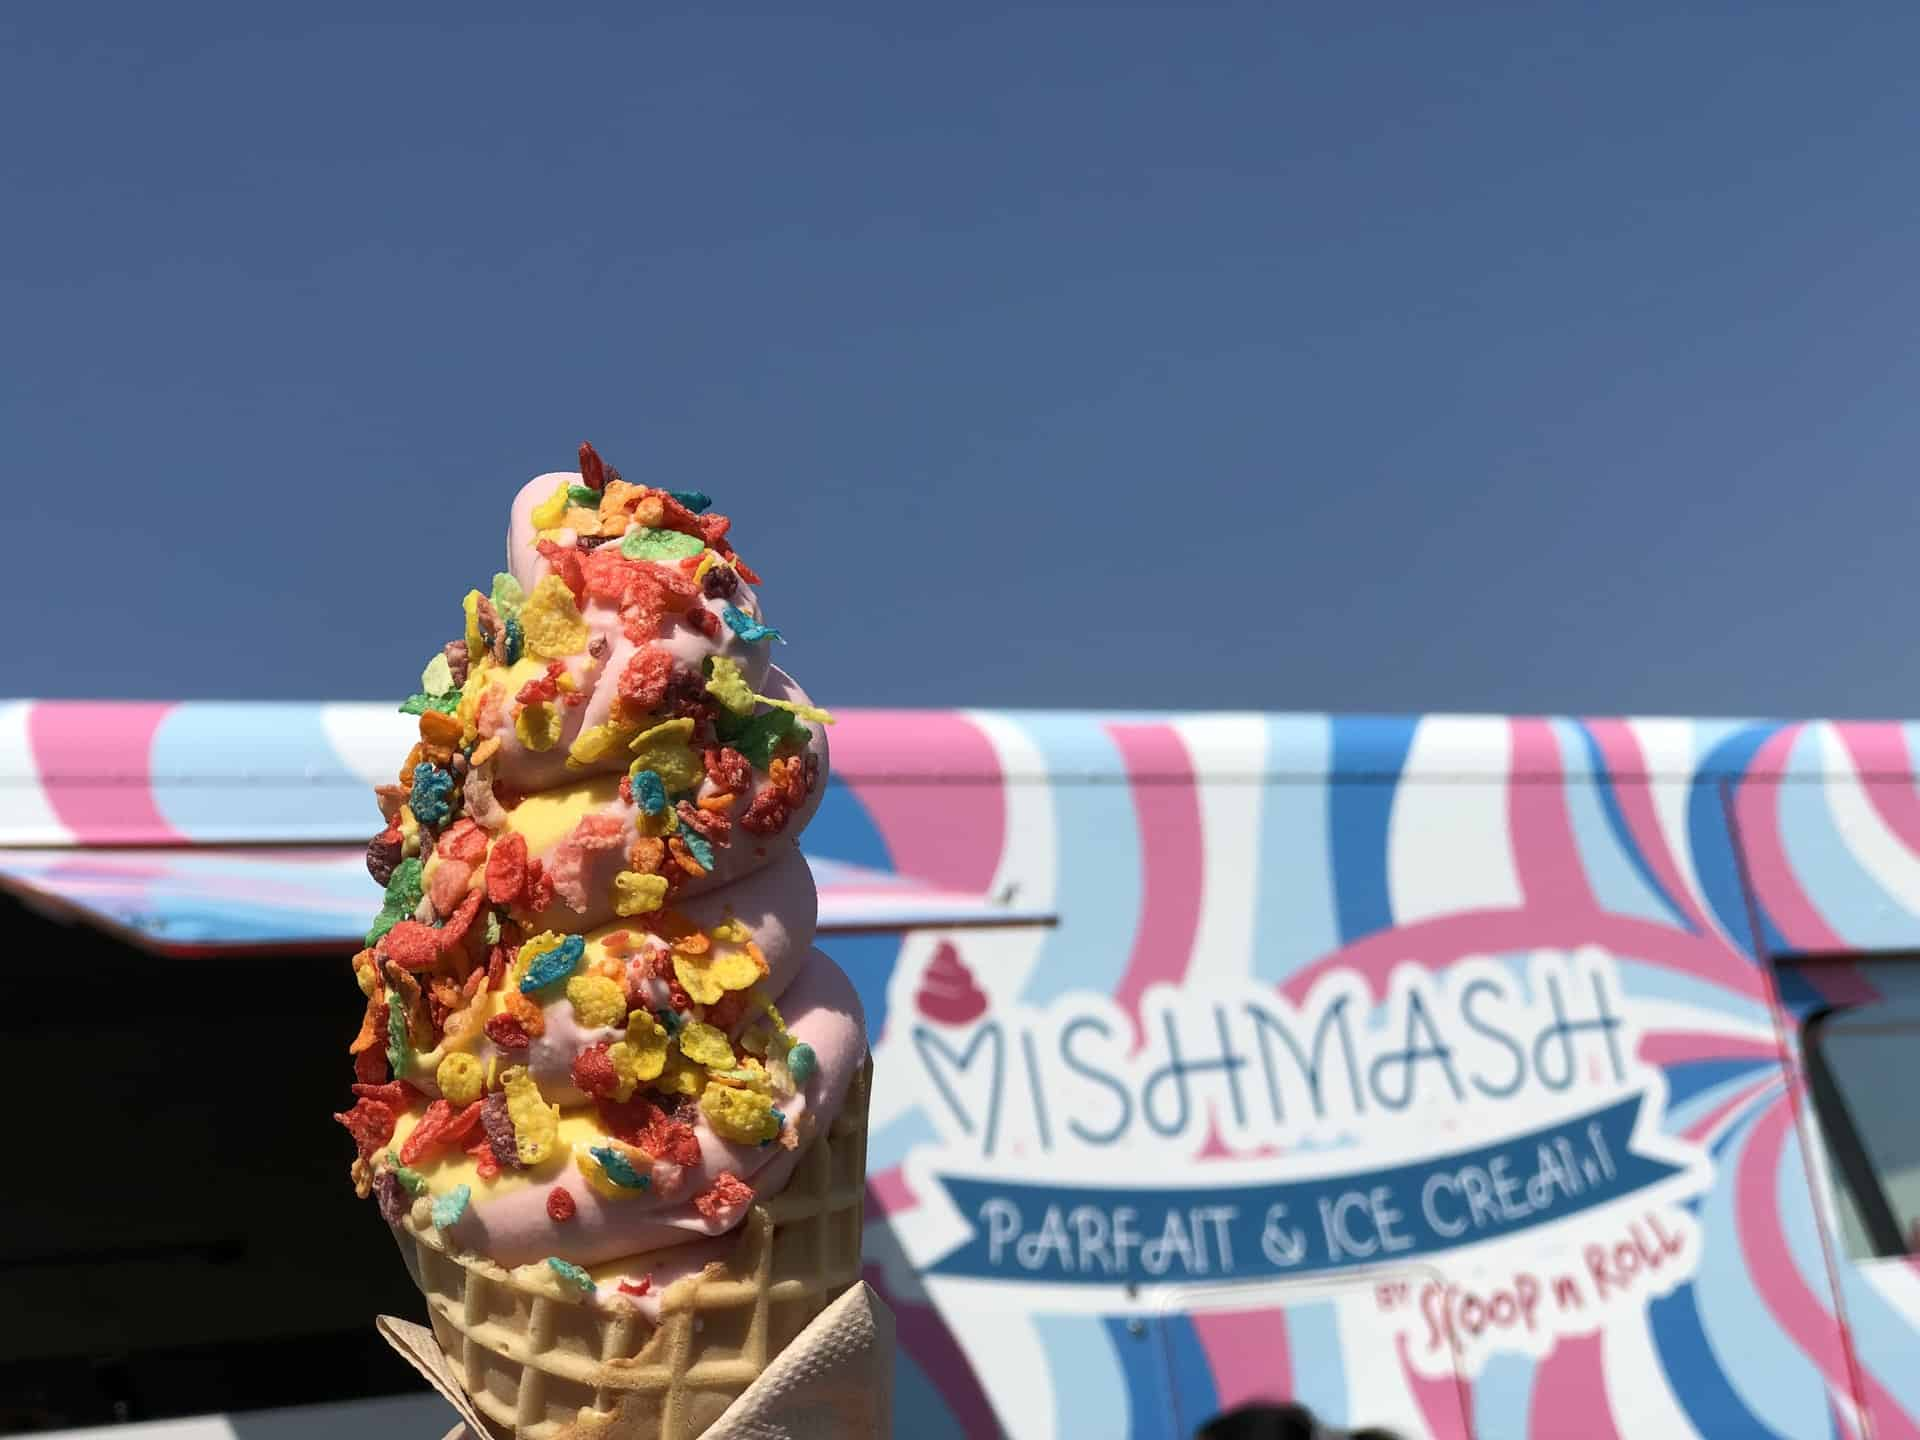 Scoop n Roll Debuts Soft Serve Ice Cream & Parfaits at Mish Mash Parfait & Ice Cream